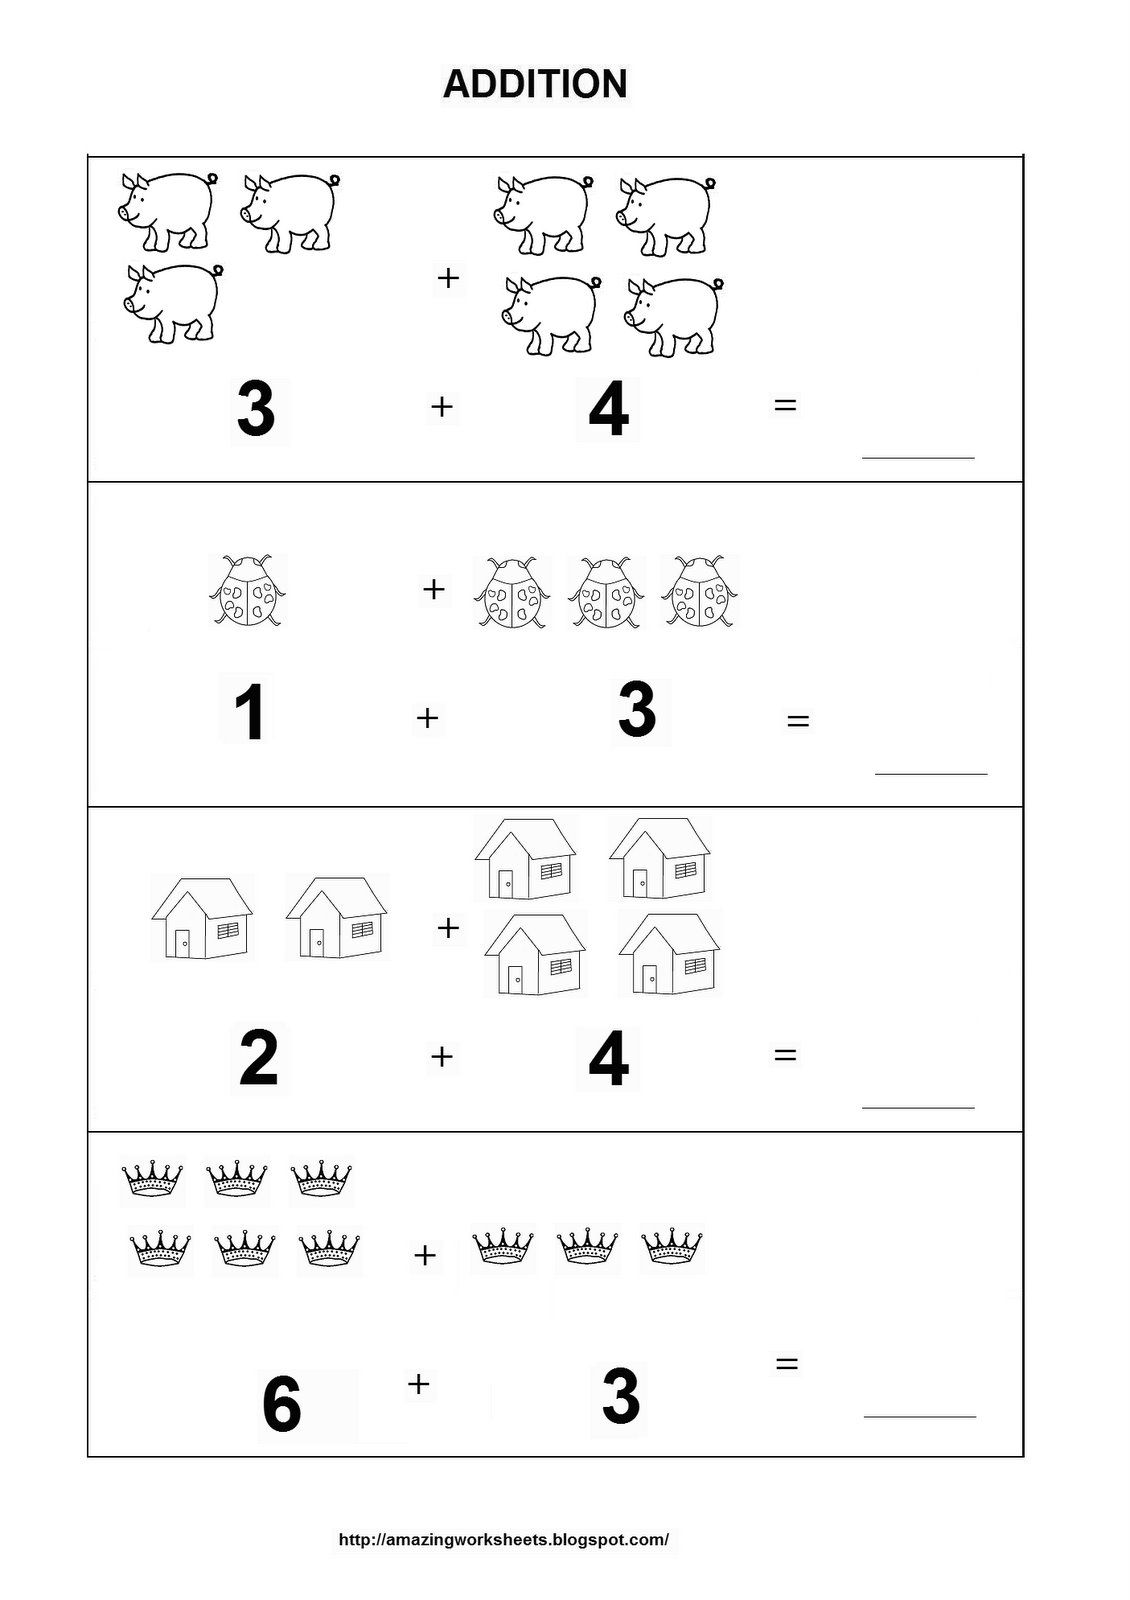 math worksheet : addition worksheet  homeschooling addition  pinterest  : Addition Worksheets For Kinder